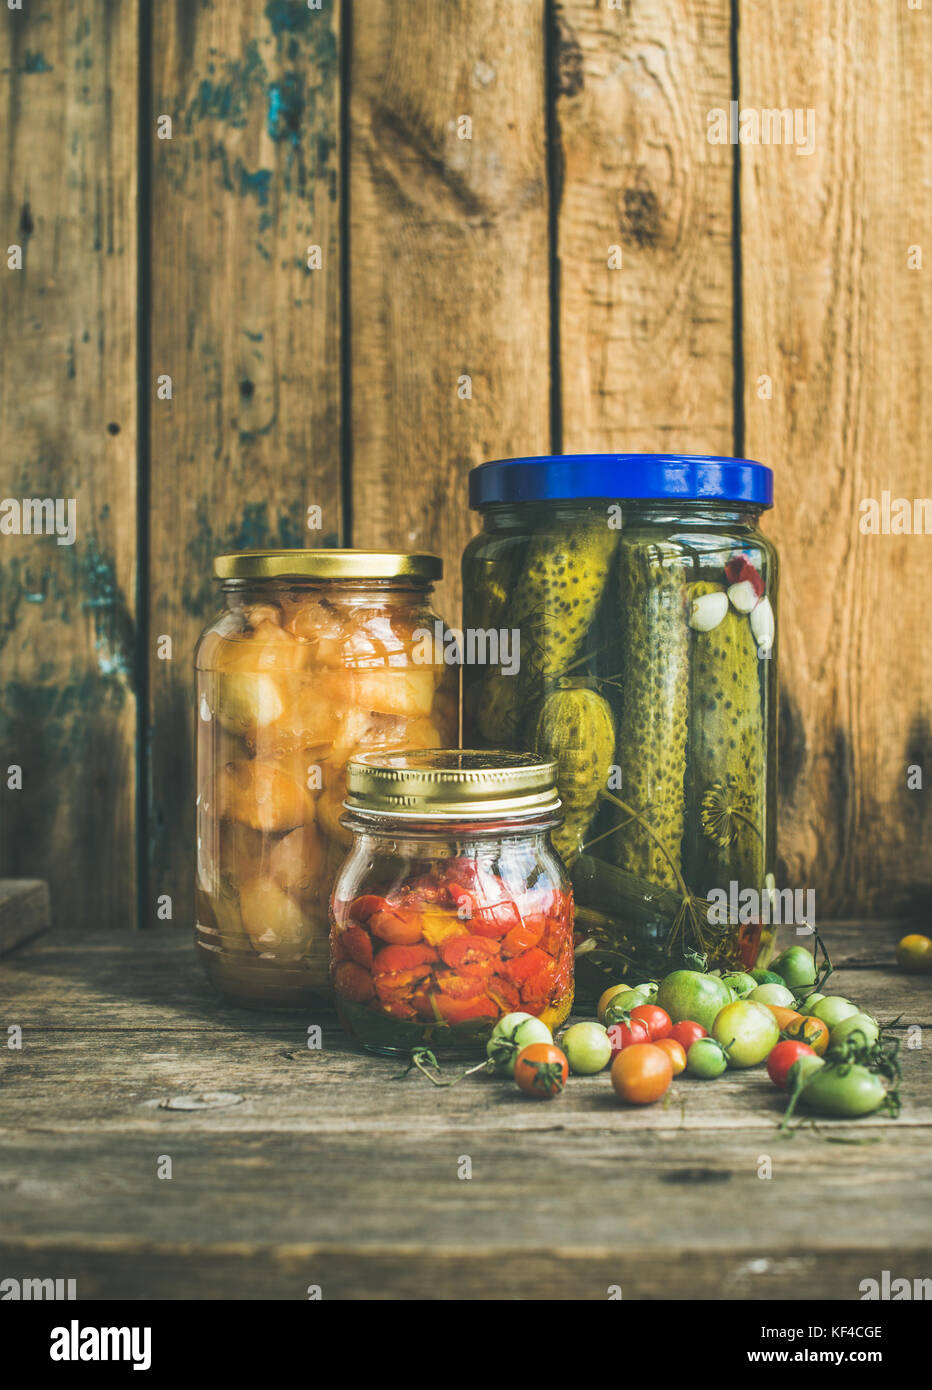 Autumn seasonal pickled vegetables and fruit in jars, copy space - Stock Image